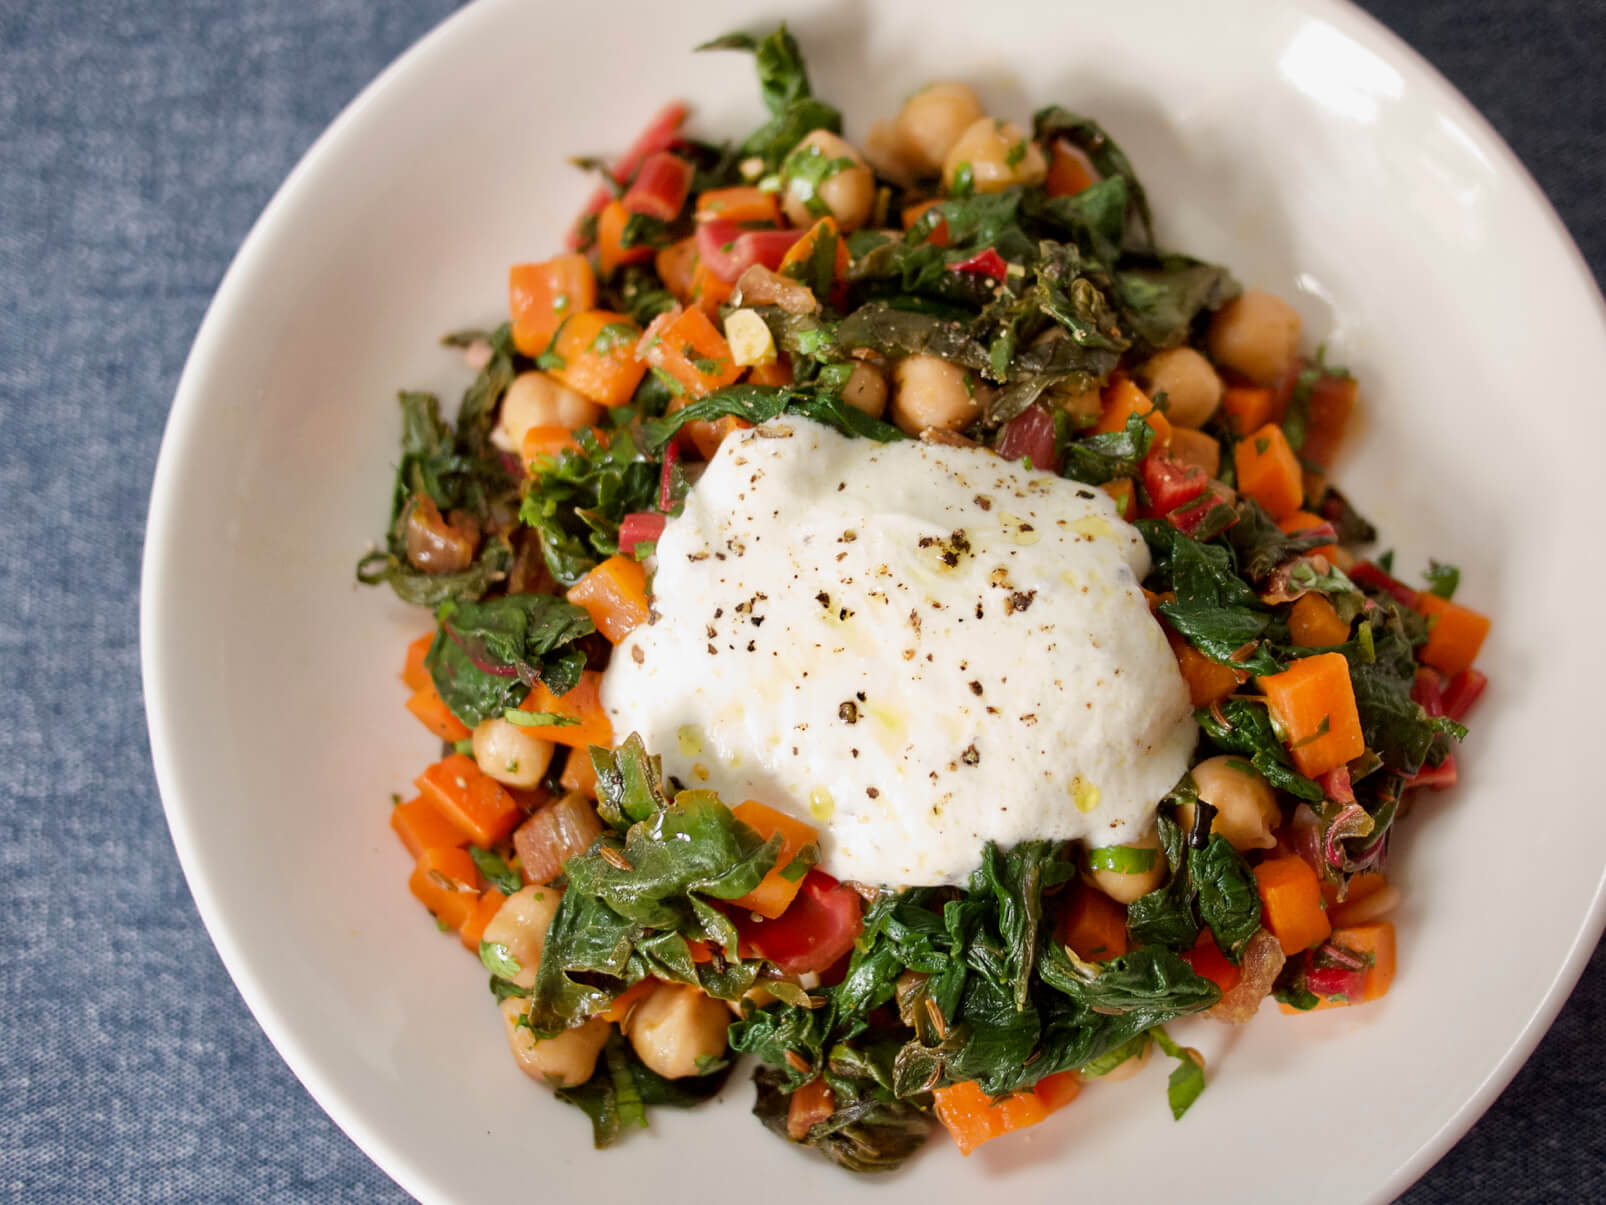 Chickpea, Chard, and Caraway Saute